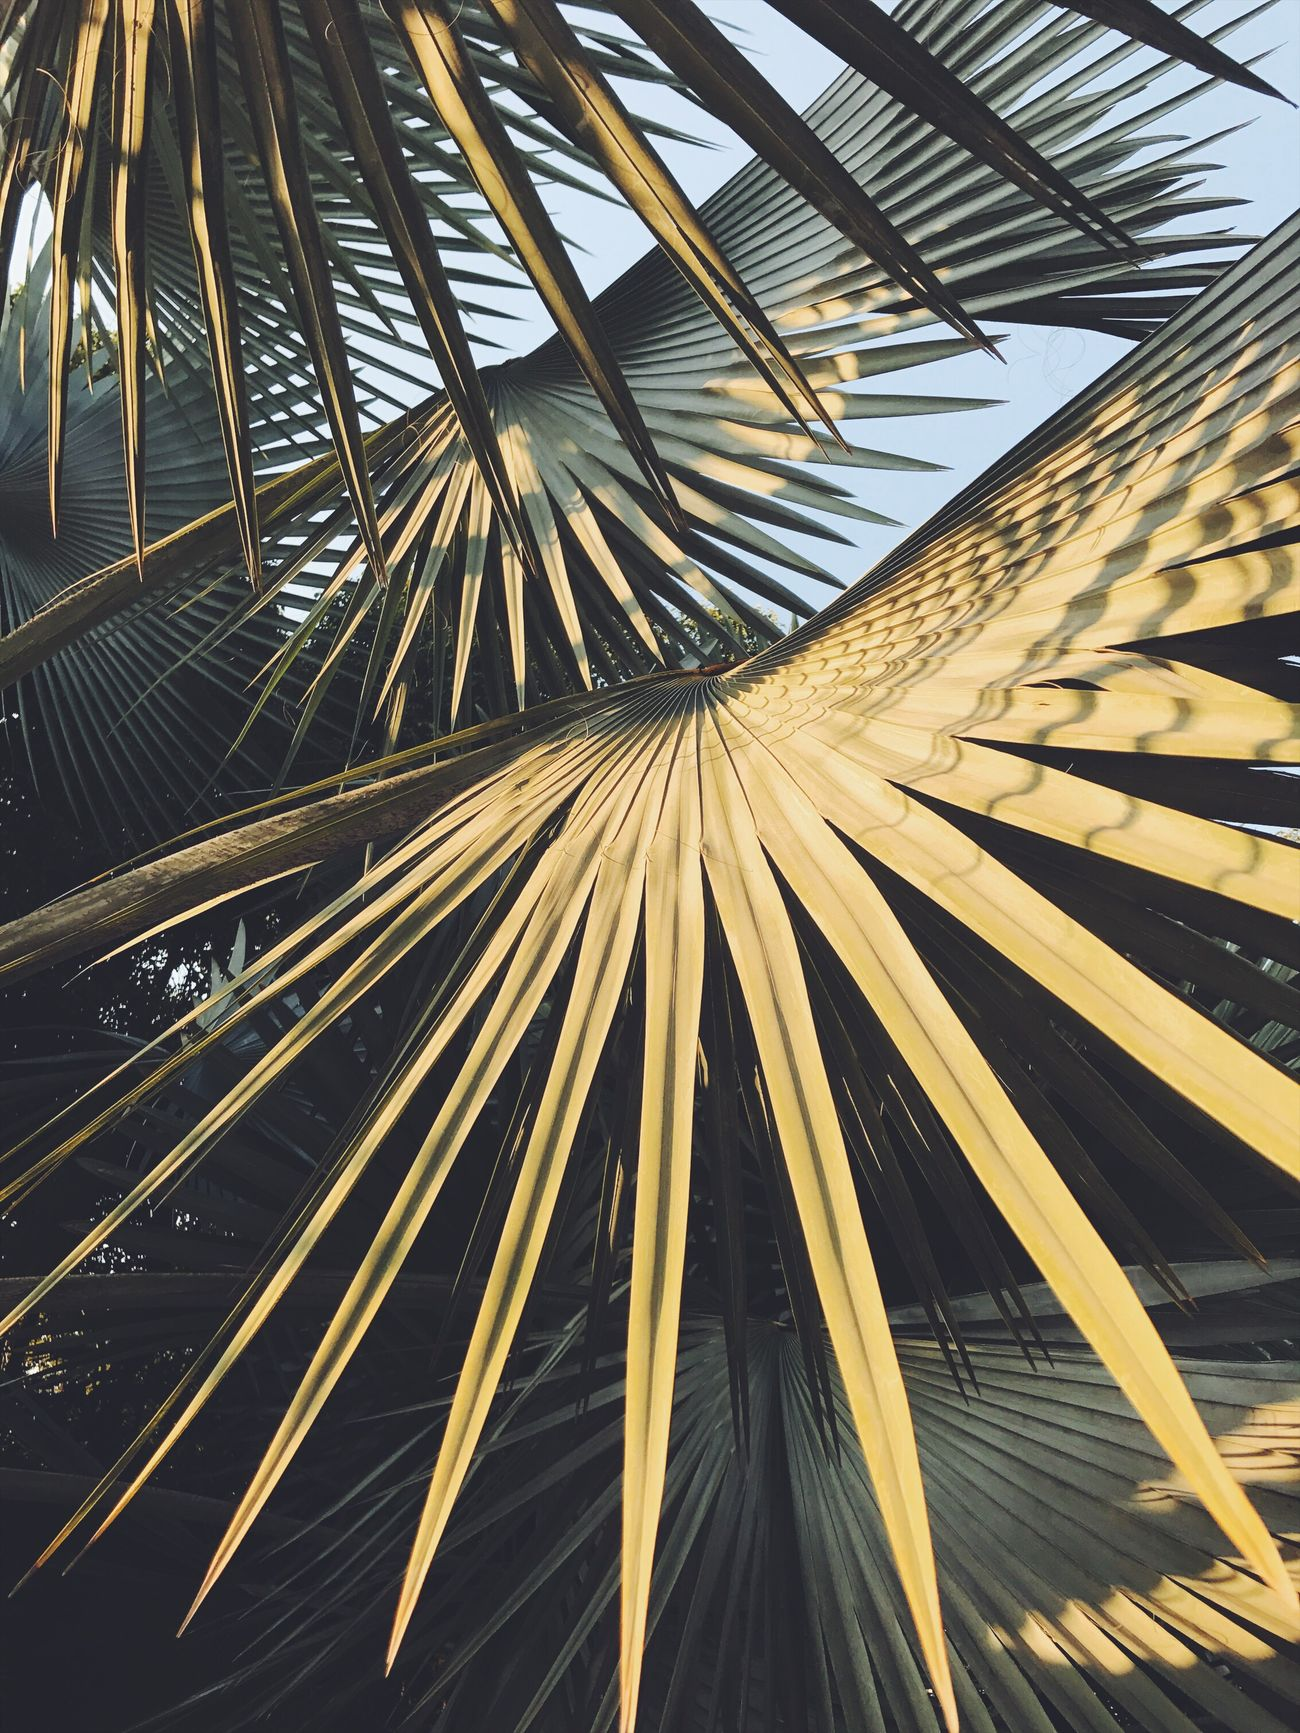 Palm tree No People Palm Tree Close-up Outdoors Nature Tree Palm Palms Palm Trees Leaves Leaf Backgrounds Photography Nature Full Frame Palm Tree